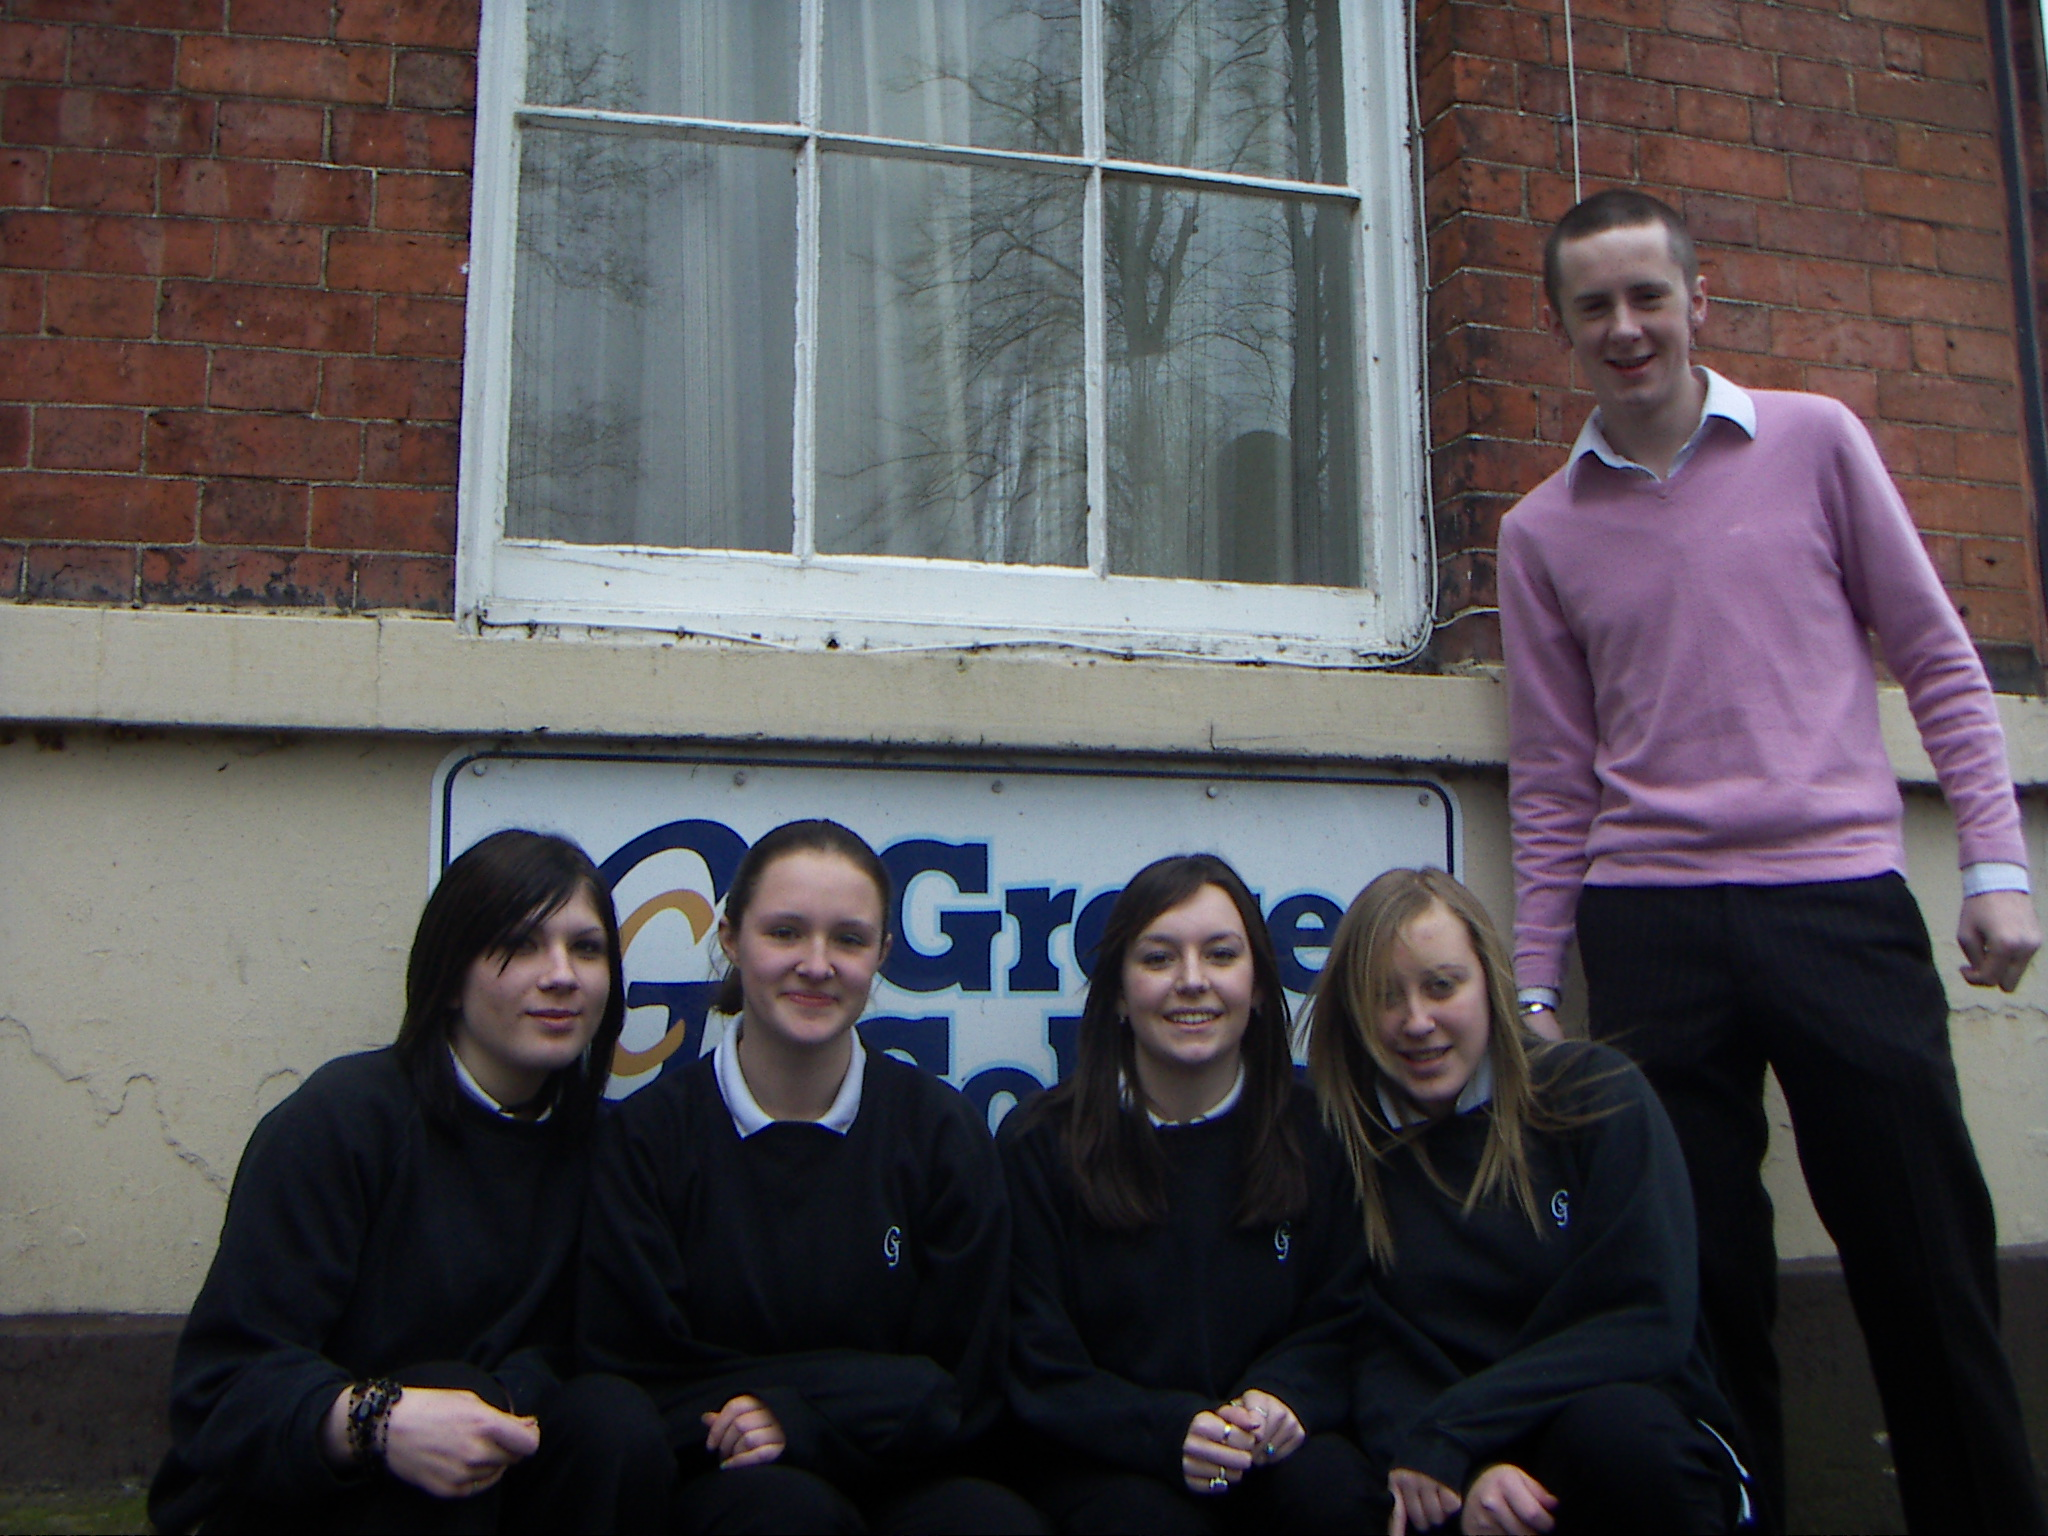 Charlie Smith, 15, Lydia Beresford, 15, Anna Taply, 14, Jade Millington, 15, with Mentor Paul White.